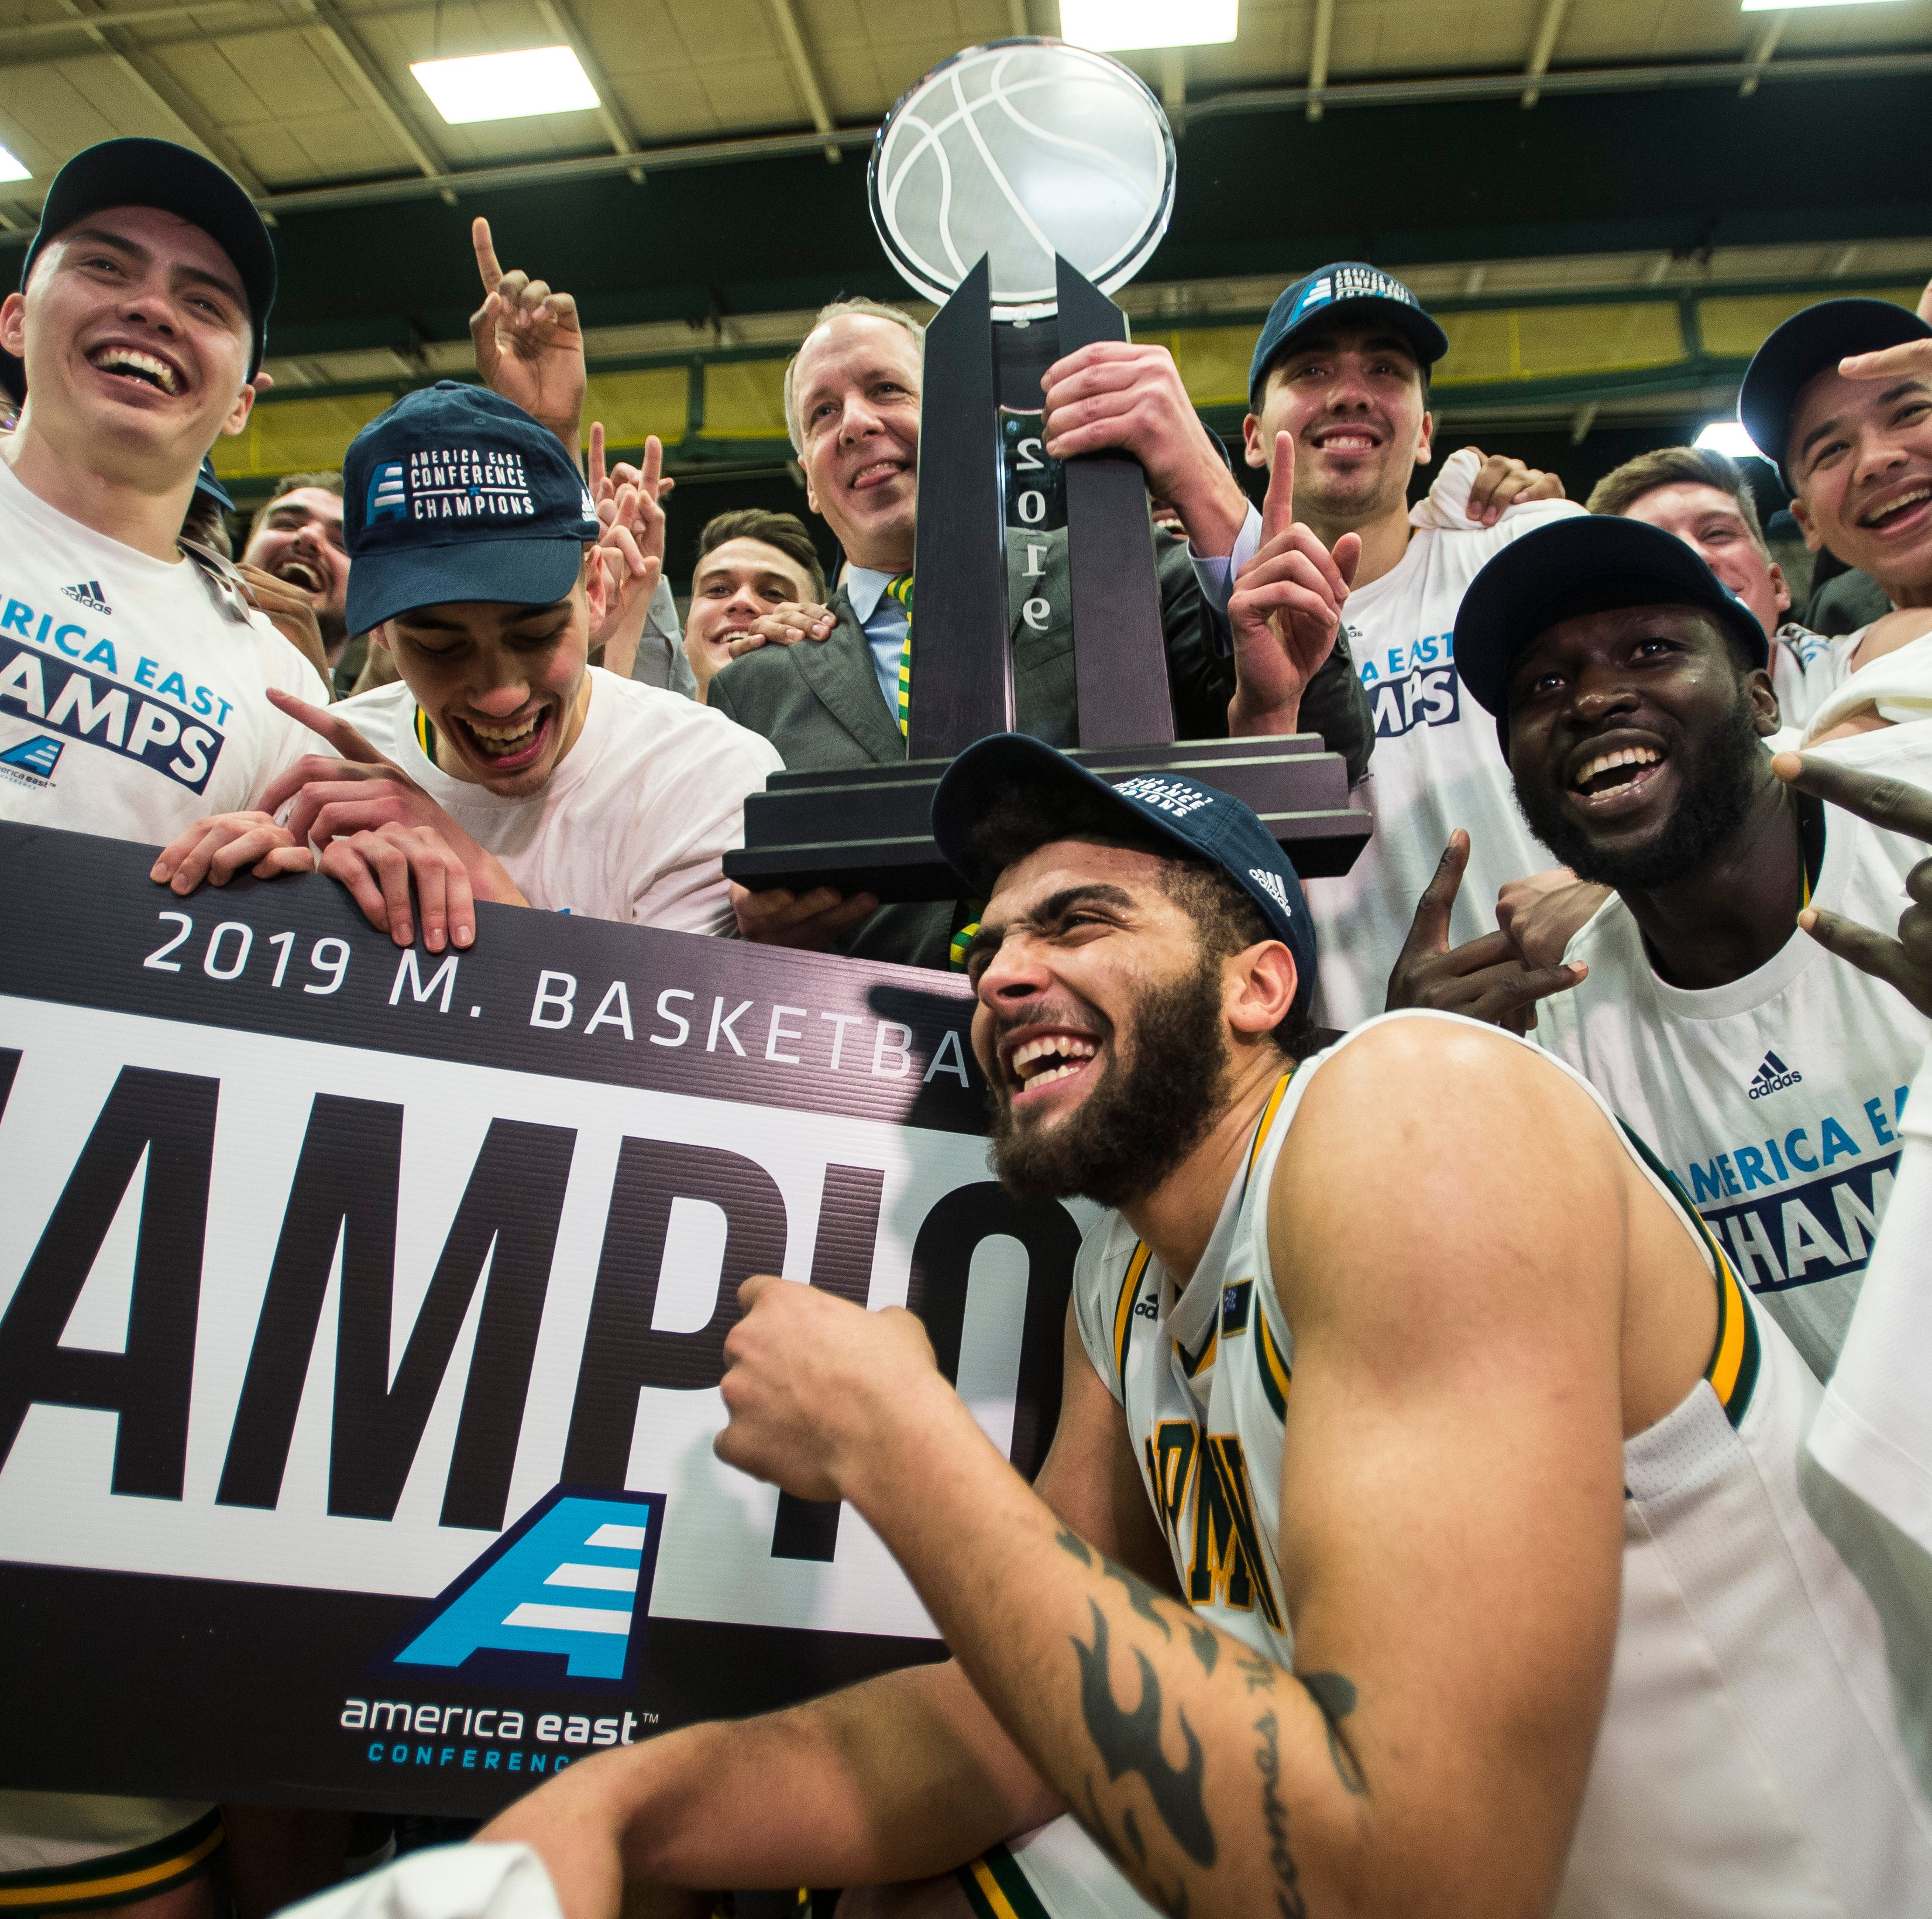 March Madness: Coverage of UVM basketball in the 2019 NCAA tournament